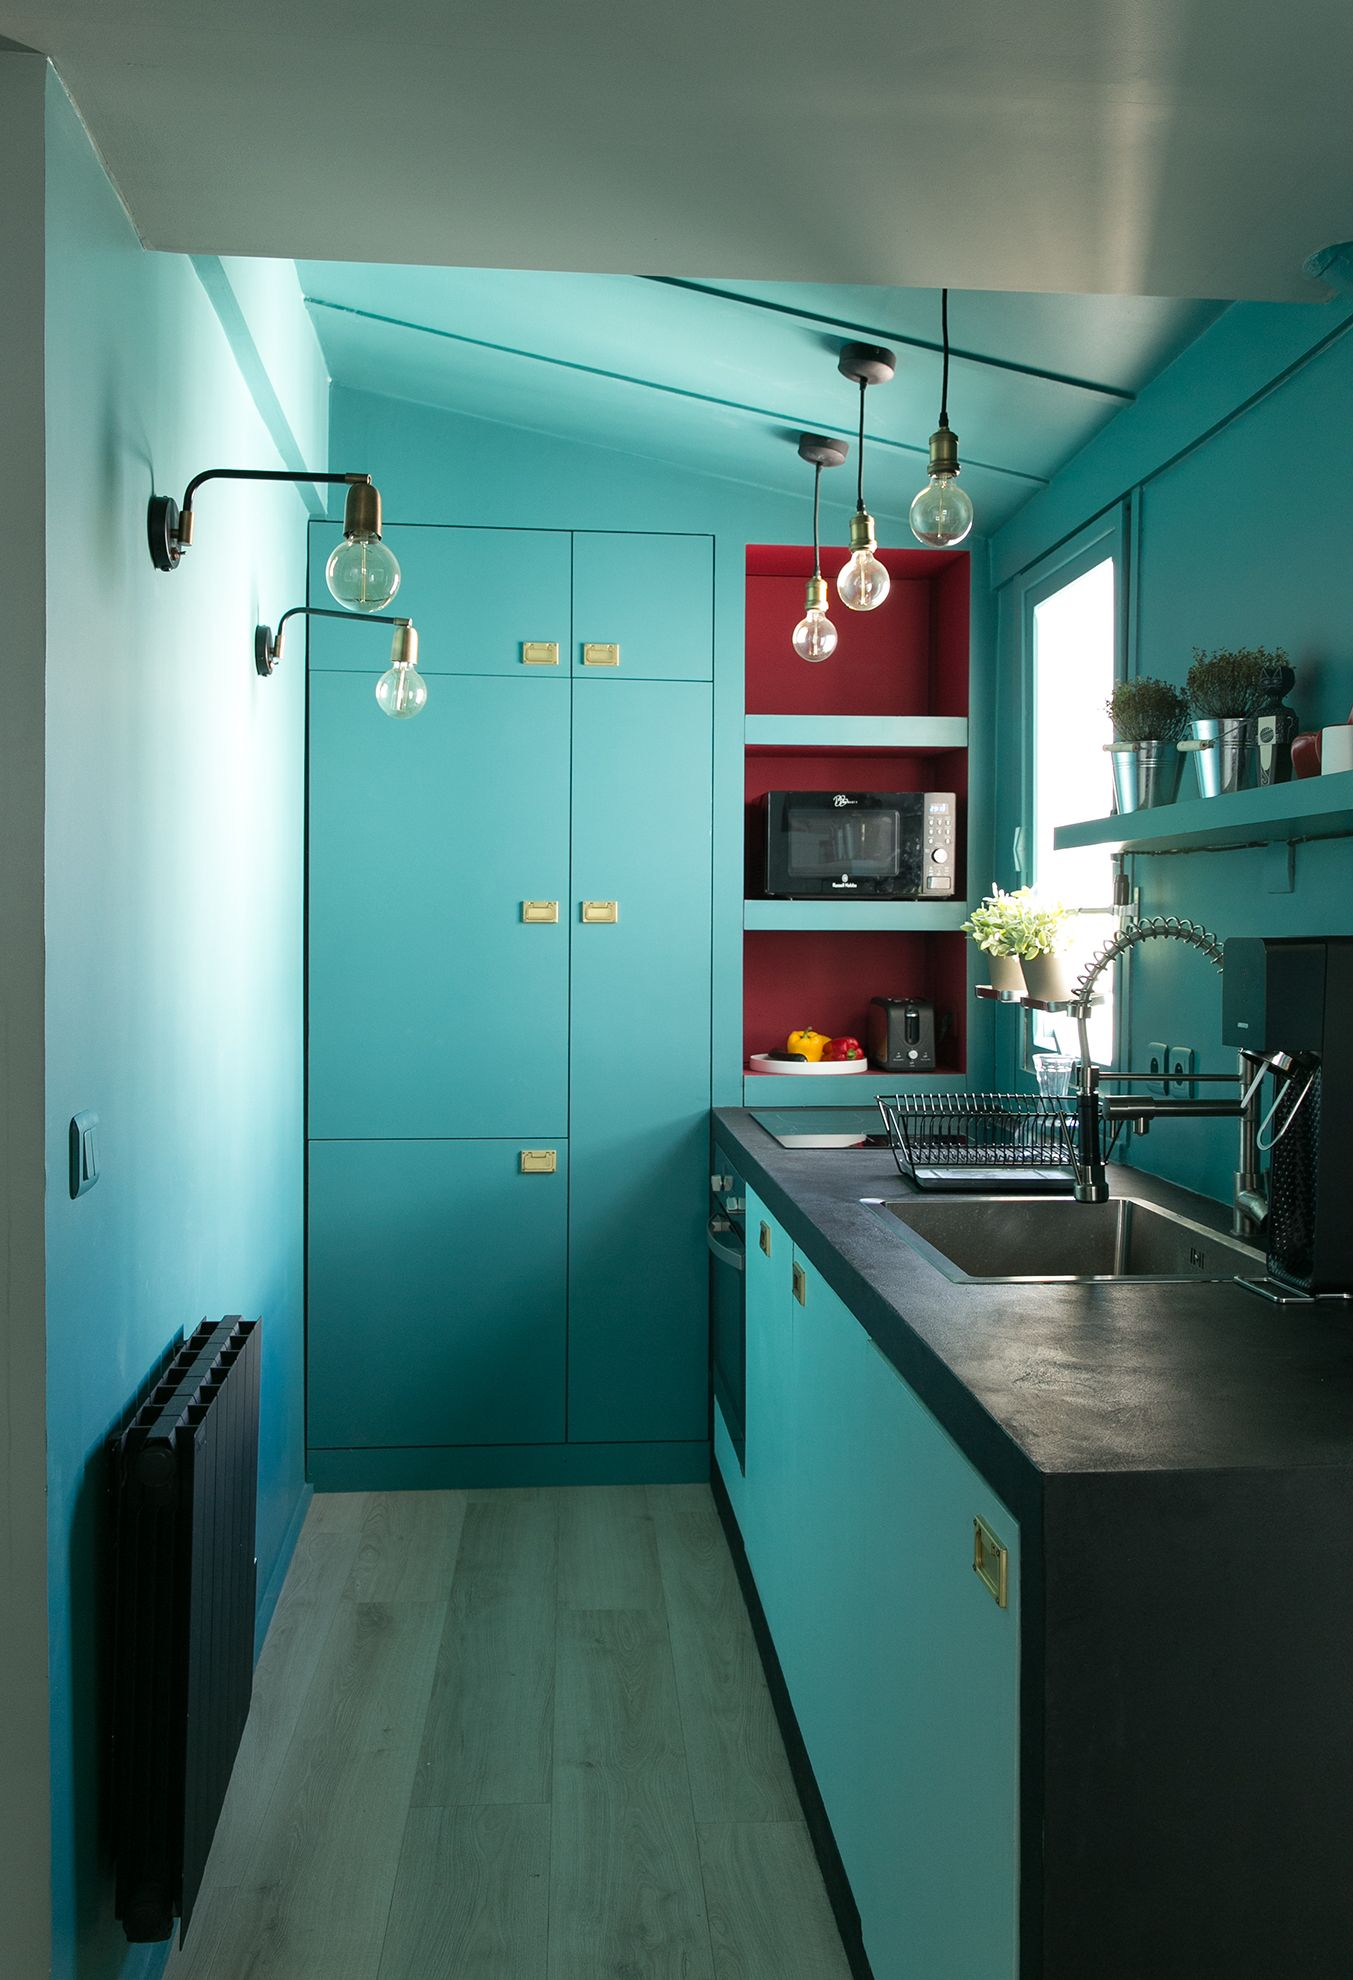 Rue Clauzel - GCG ARCHITECTES // Small blue kitchen + touch of red ...